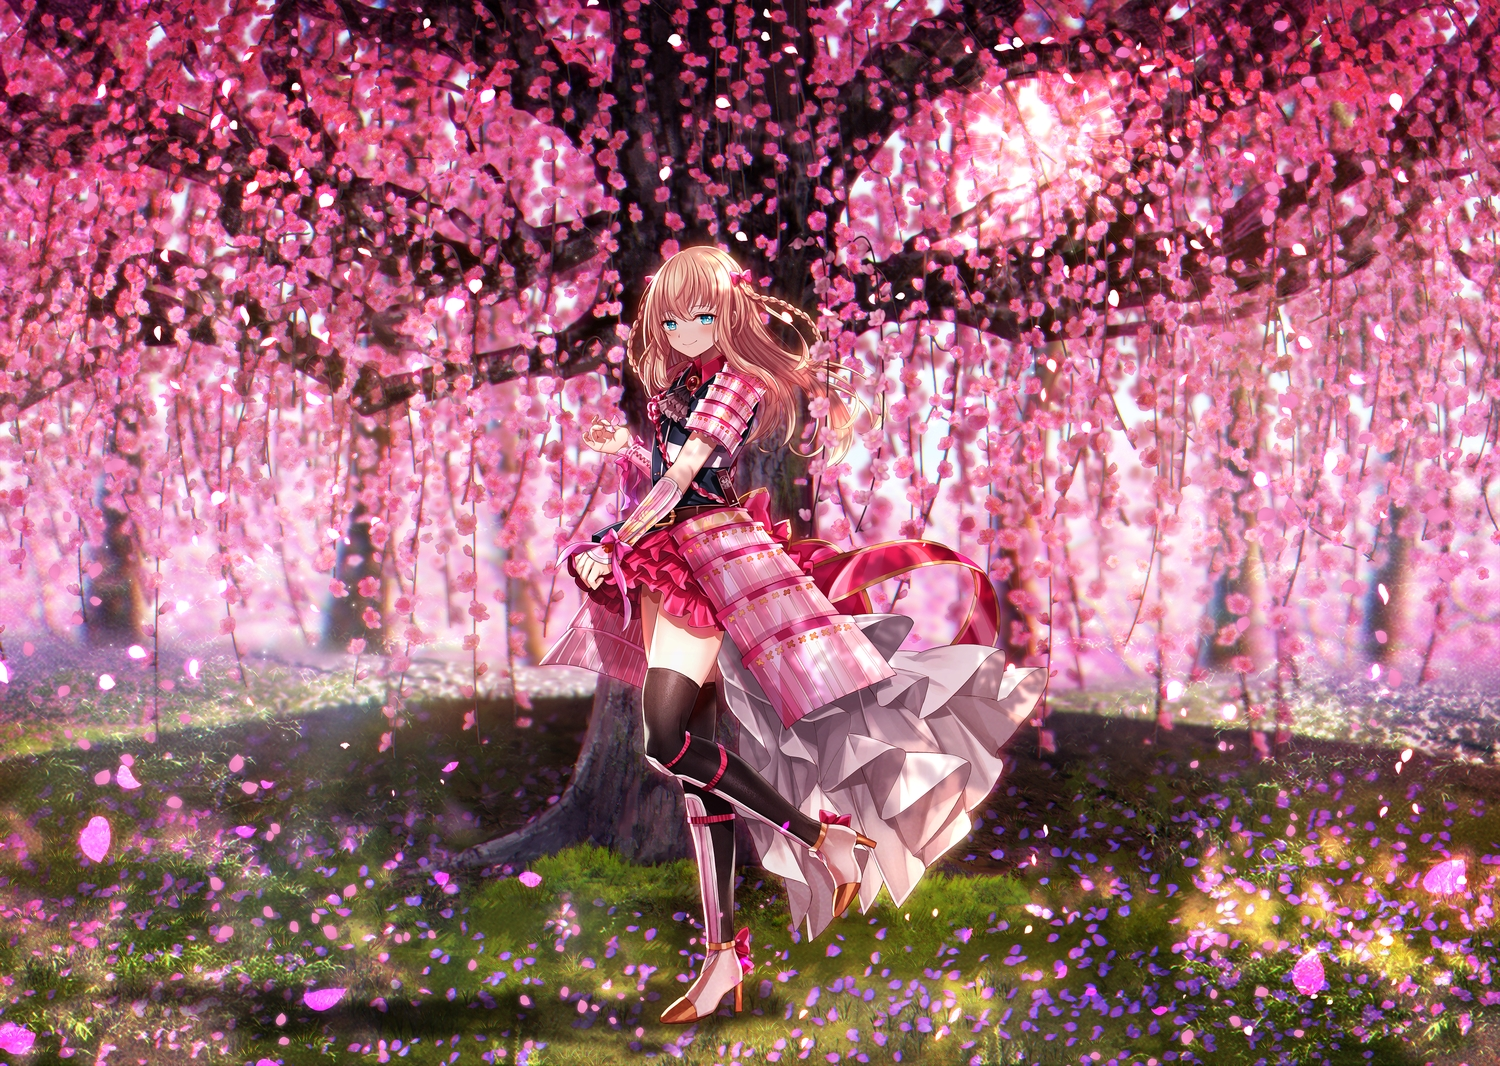 abandon_ranka all_male anthropomorphism aqua_eyes armor blonde_hair blush bow braids cherry_blossoms dress flowers grass katana long_hair male midare_toushirou petals samurai sword thighhighs touken_ranbu trap tree weapon